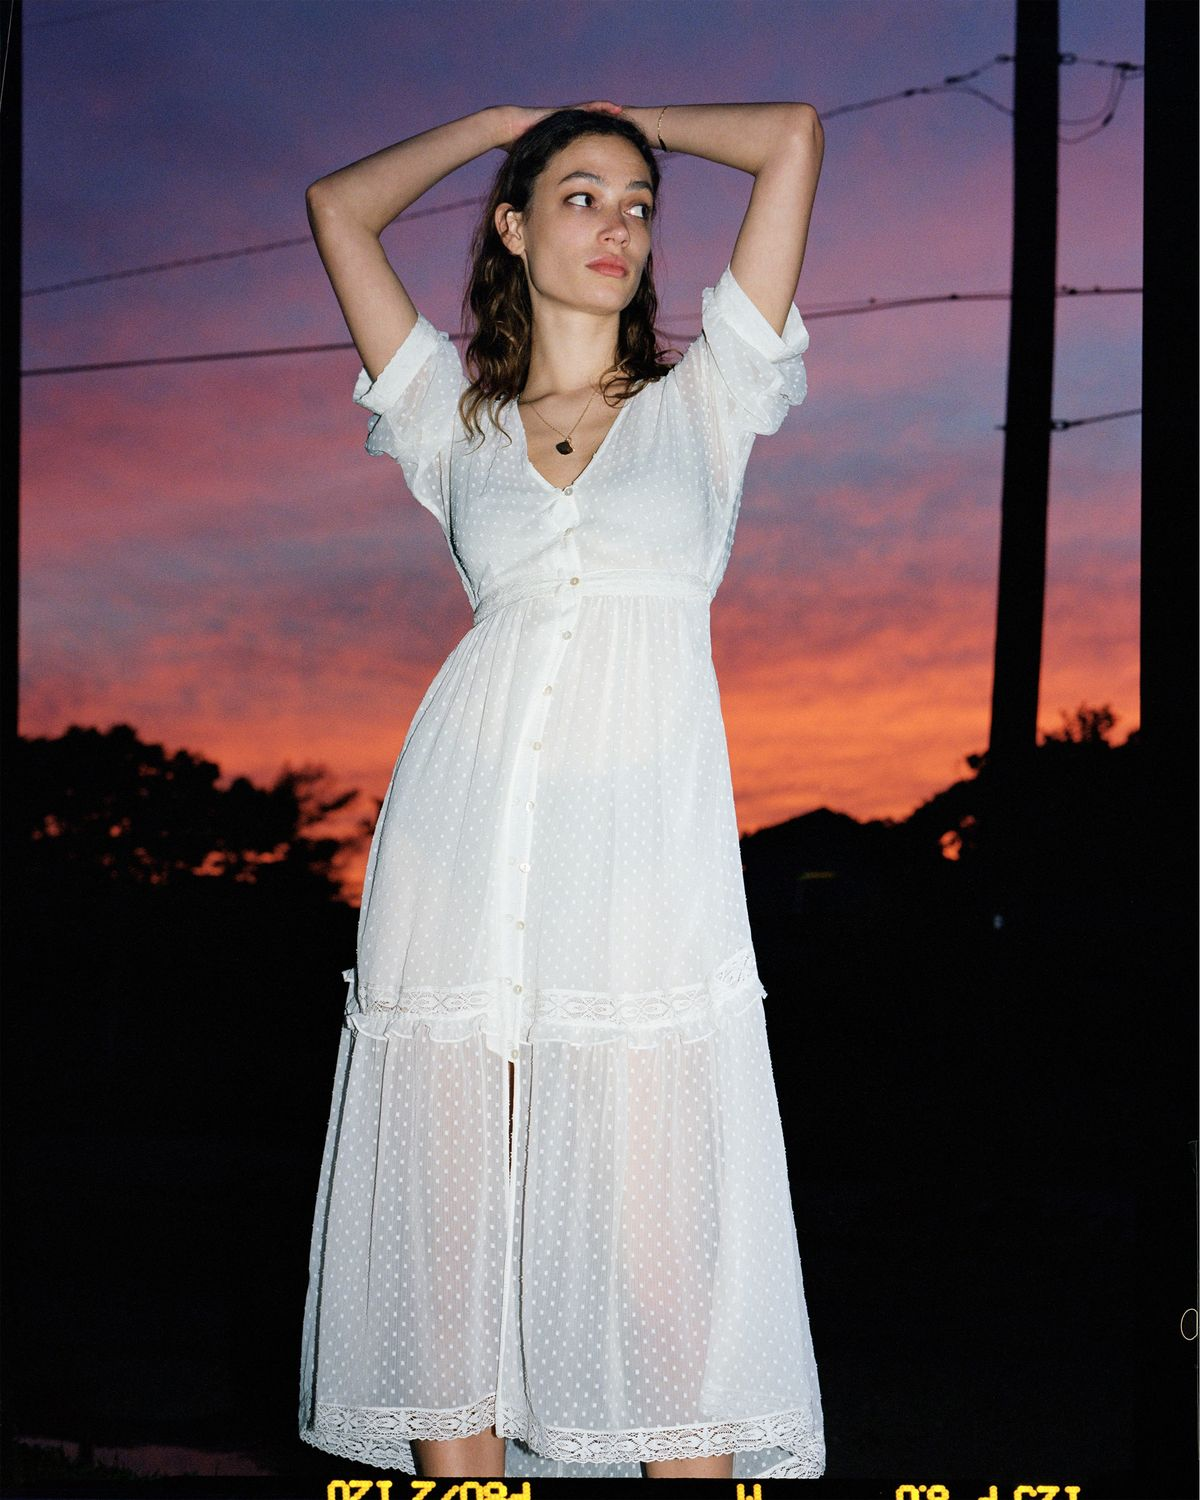 A photograph of a young woman posing in front of a vibrant sunset, wearing a long white dotted dress from our latest summer collection.